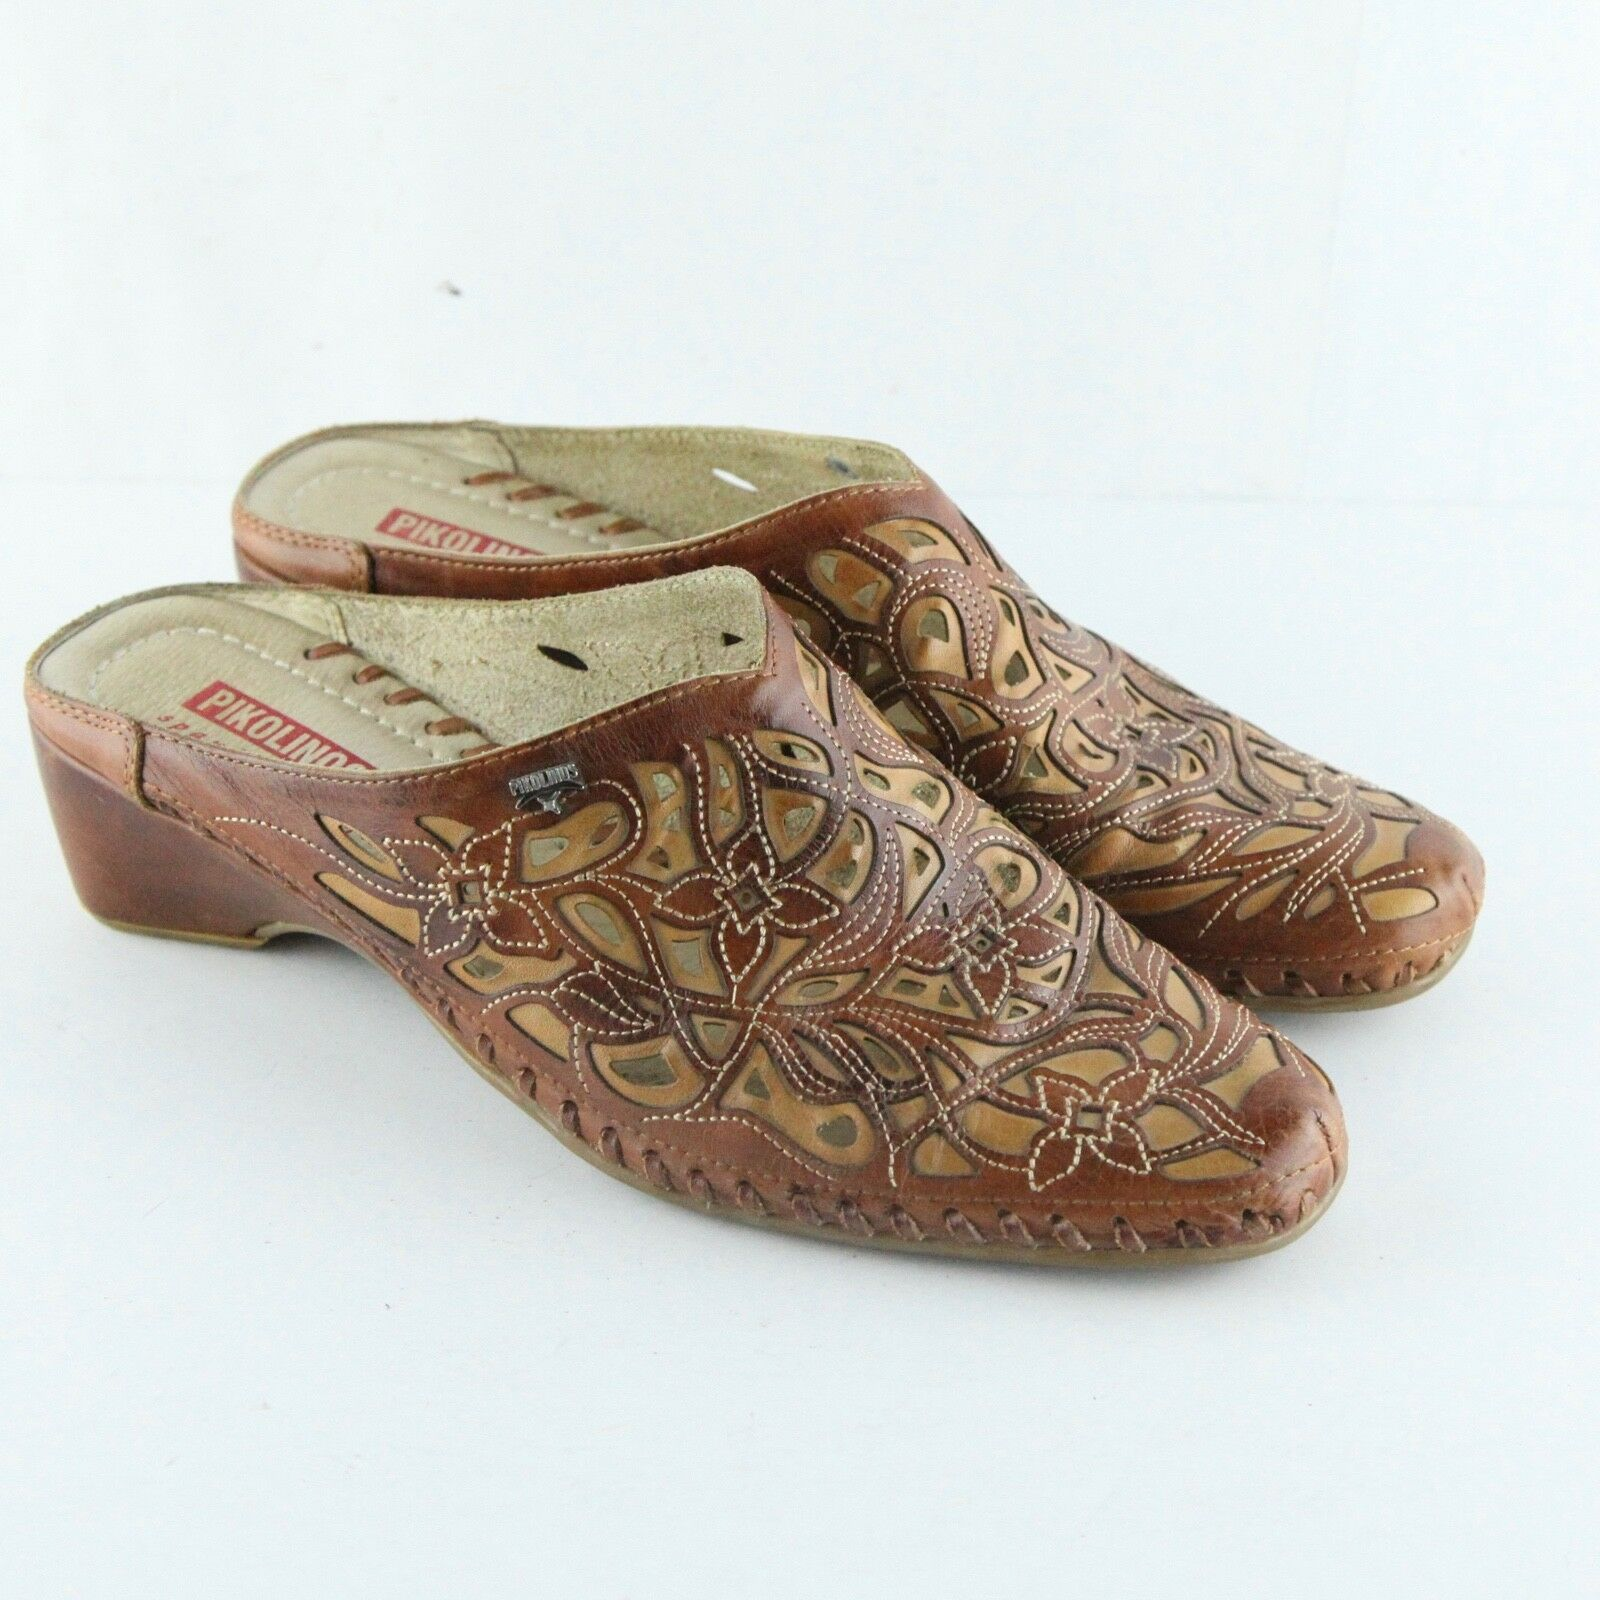 Pikolinos Brown Leather Tan Perforated Floral Cutout Mule Slide Clog shoes 40 10